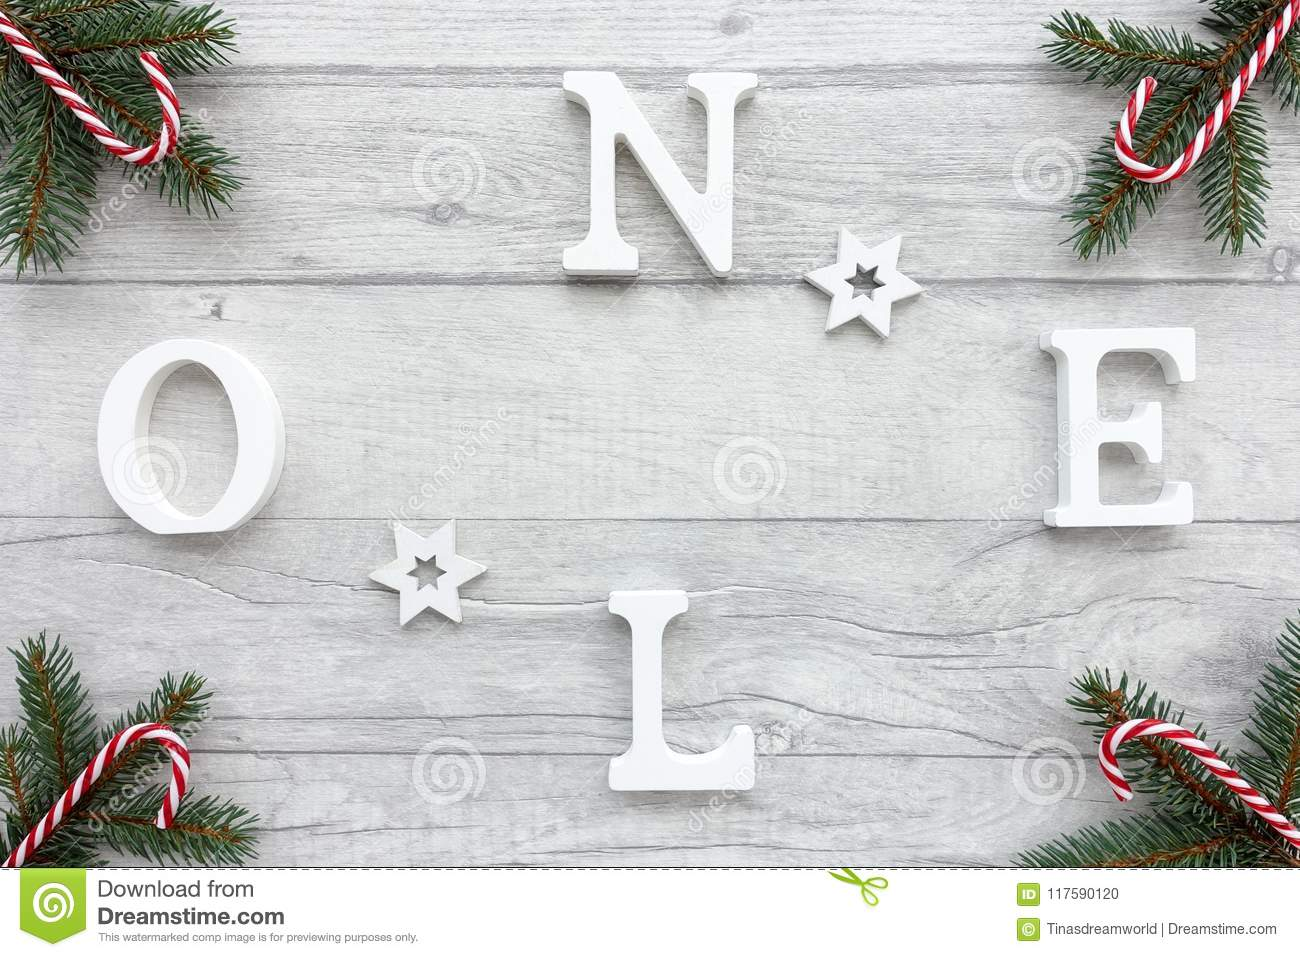 Wooden Letters Noel On Christmas Background Stock Photo Image Of